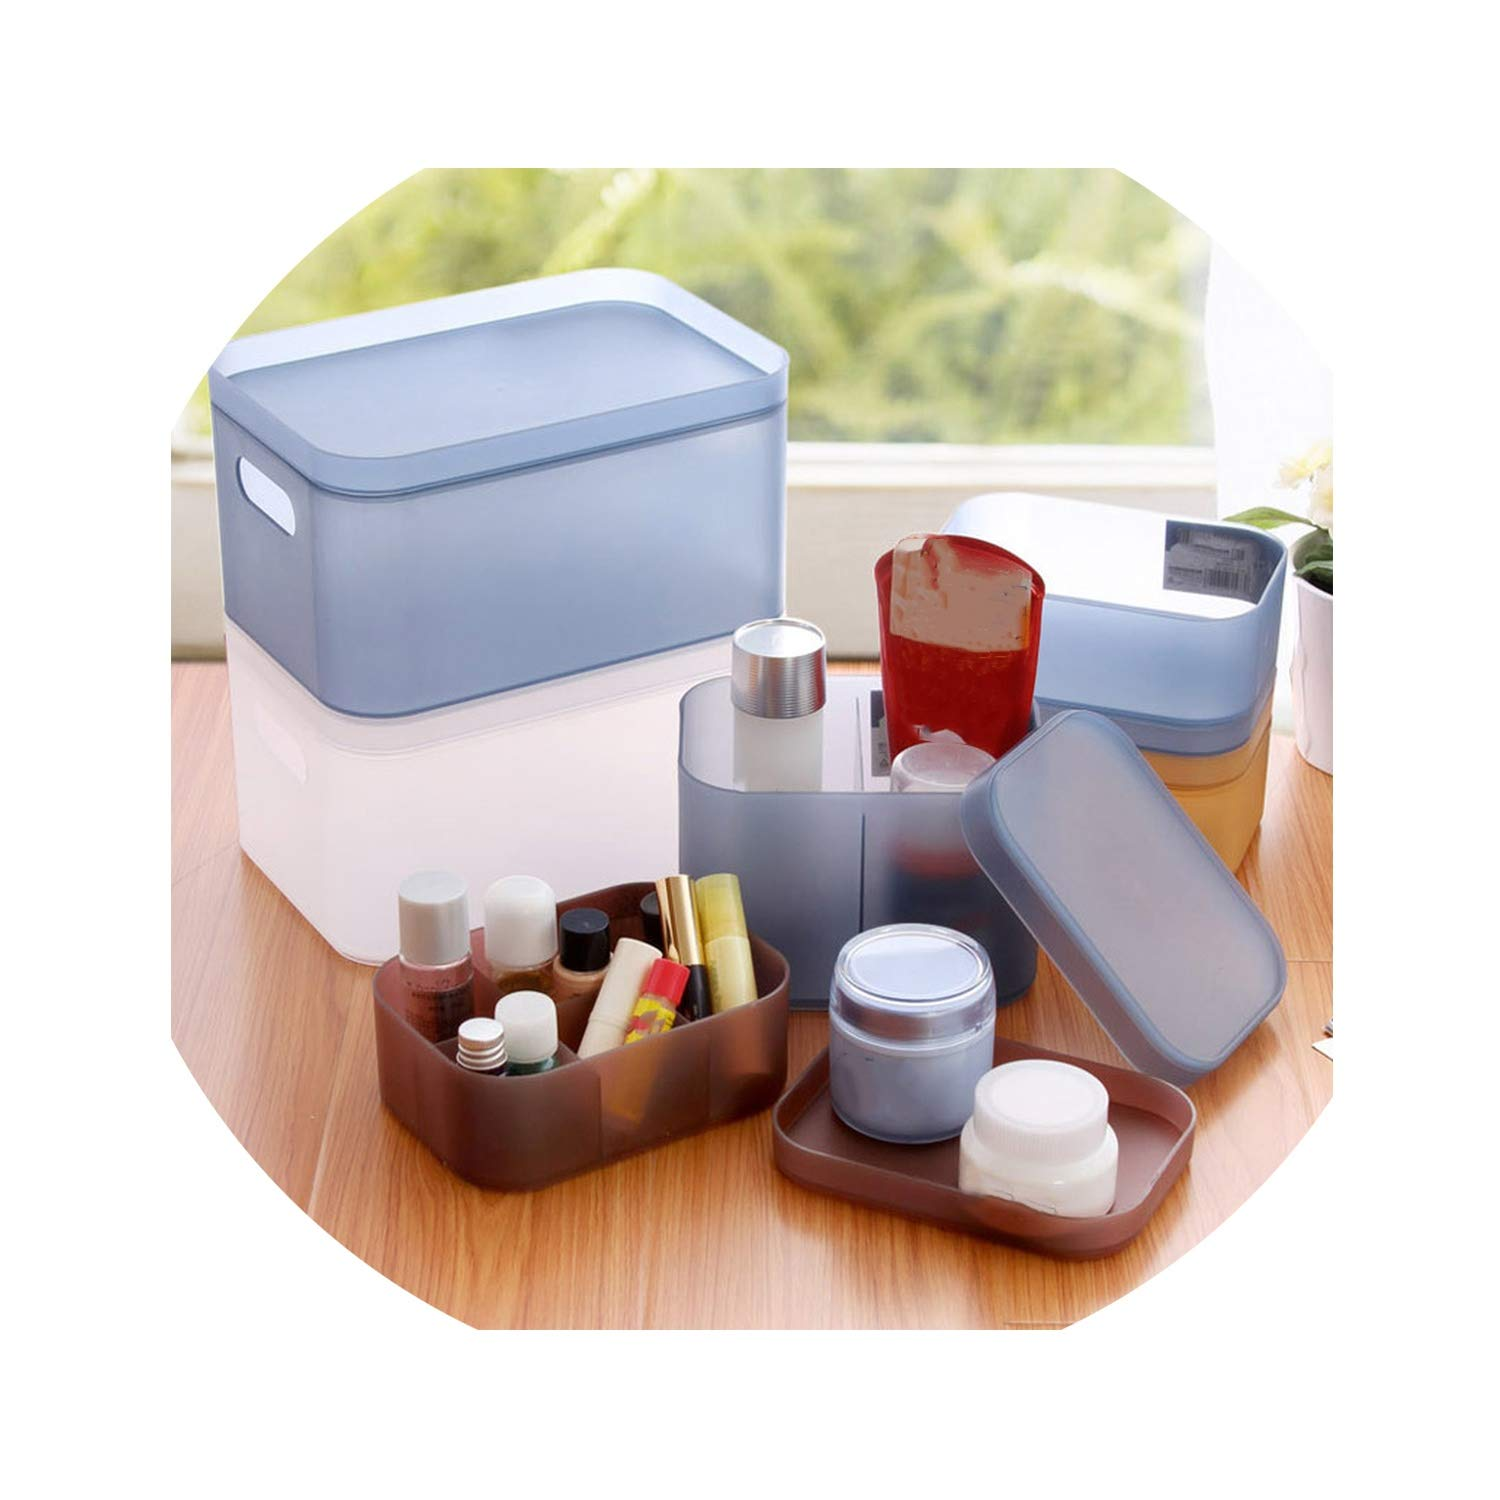 I'll NEVER BE HER with Thick Plastic Covered Cosmetics Receive A Case Free Combination Desktop Clutter Storage Box Store Content Box,S 15.5X11X7Cm 6 Grid,White